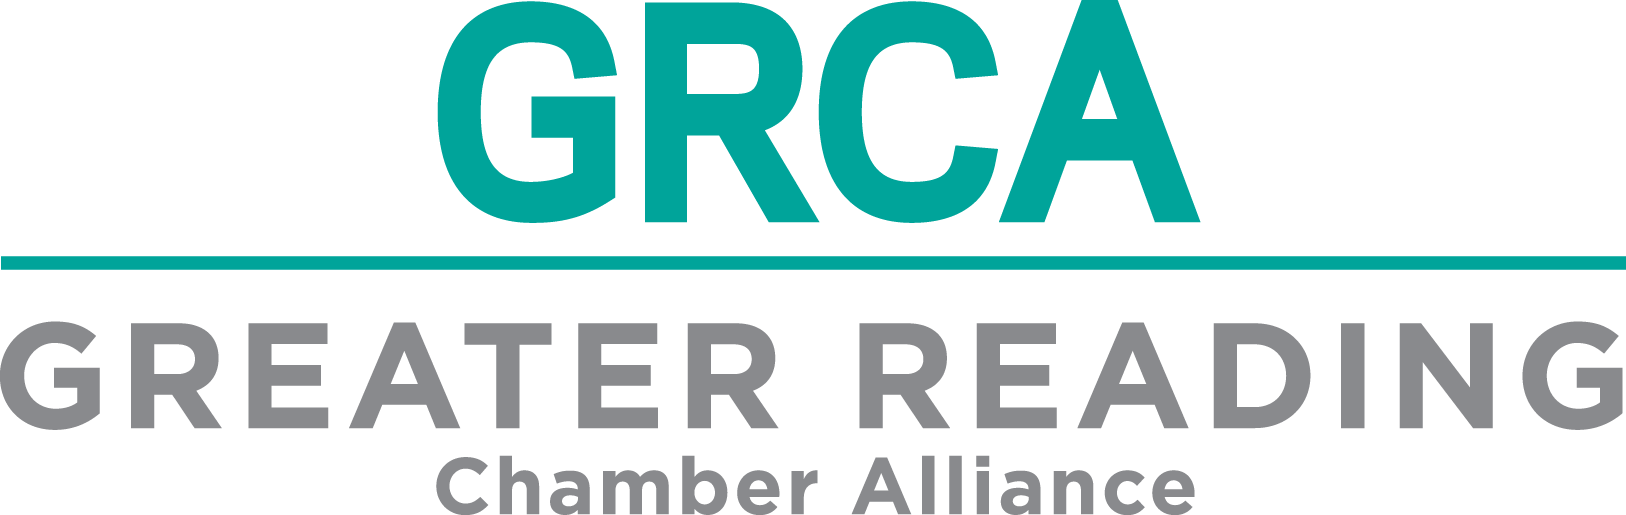 Greater Reading Chamber Alliance